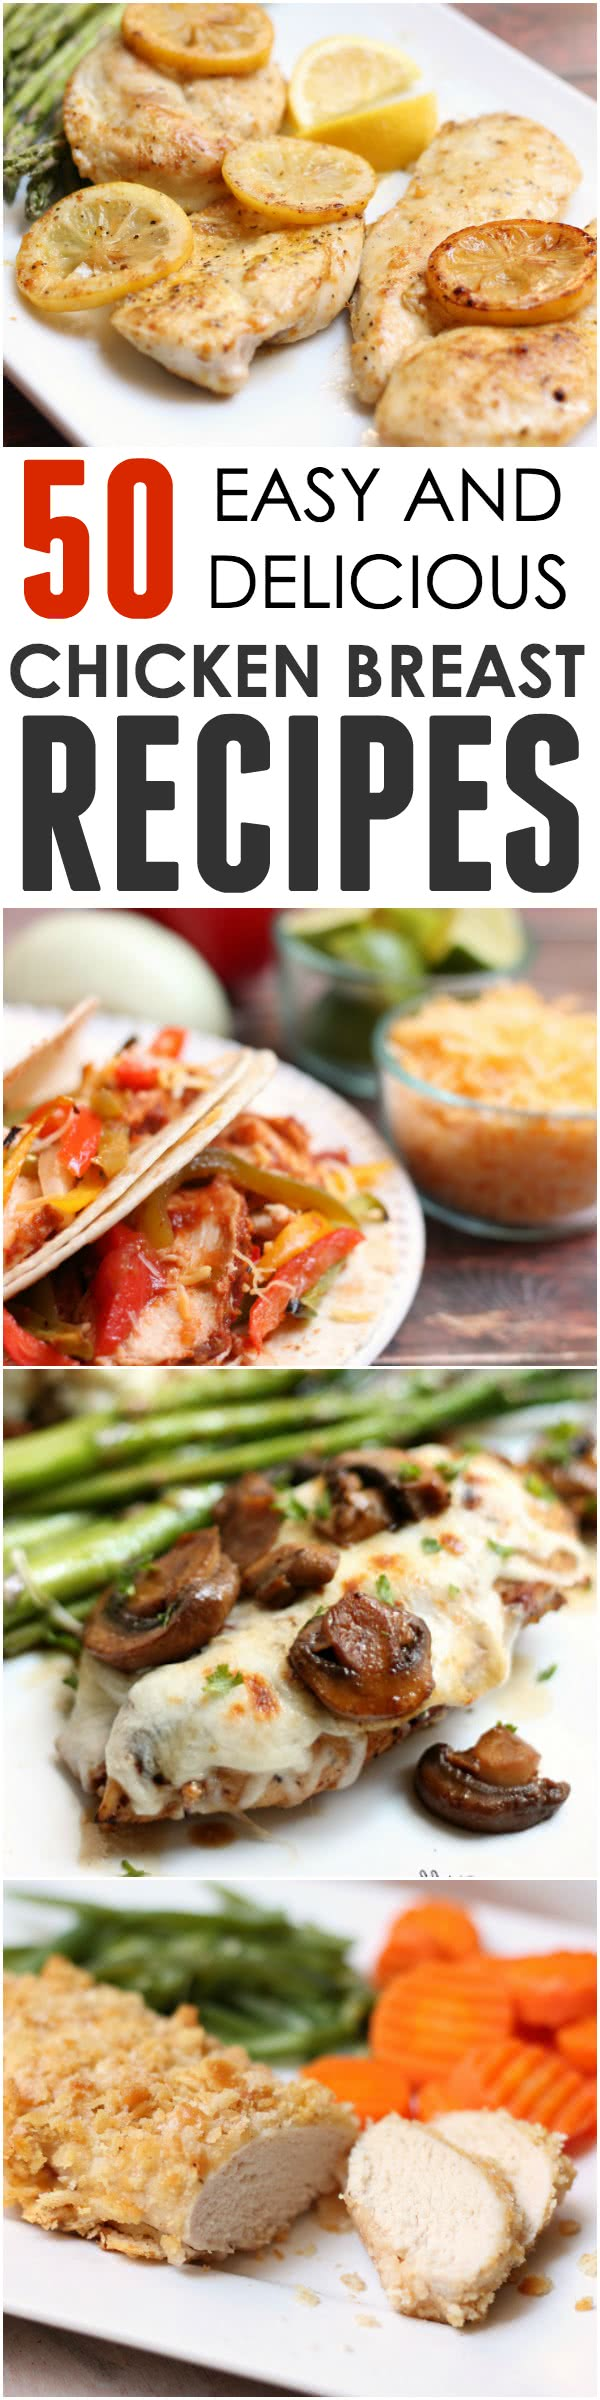 50 Easy and Delicious Chicken Breast Recipes